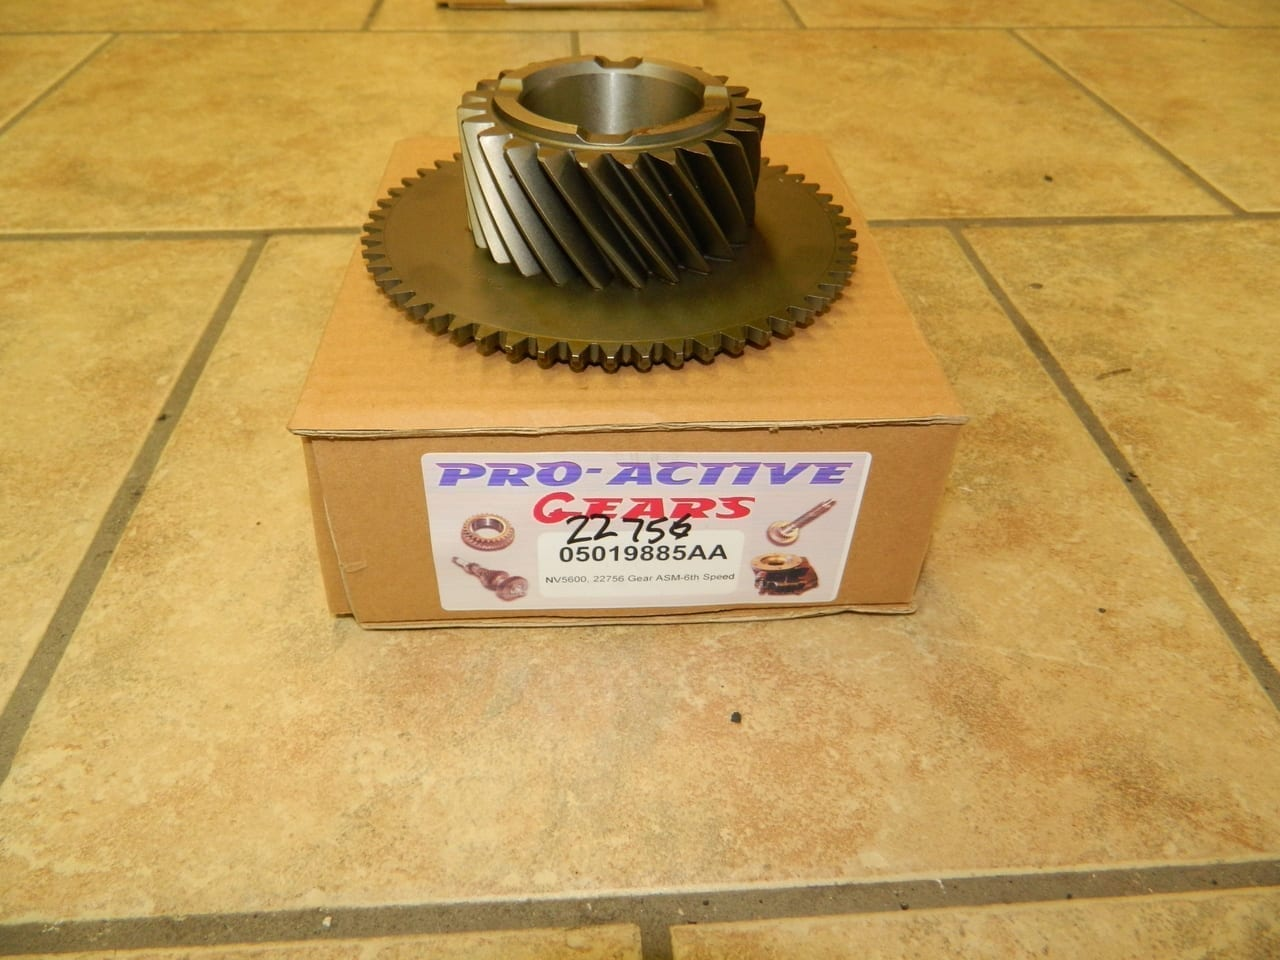 NV5600 6th Gear Mainshaft Dodge Diesel 6 Speed Transmission